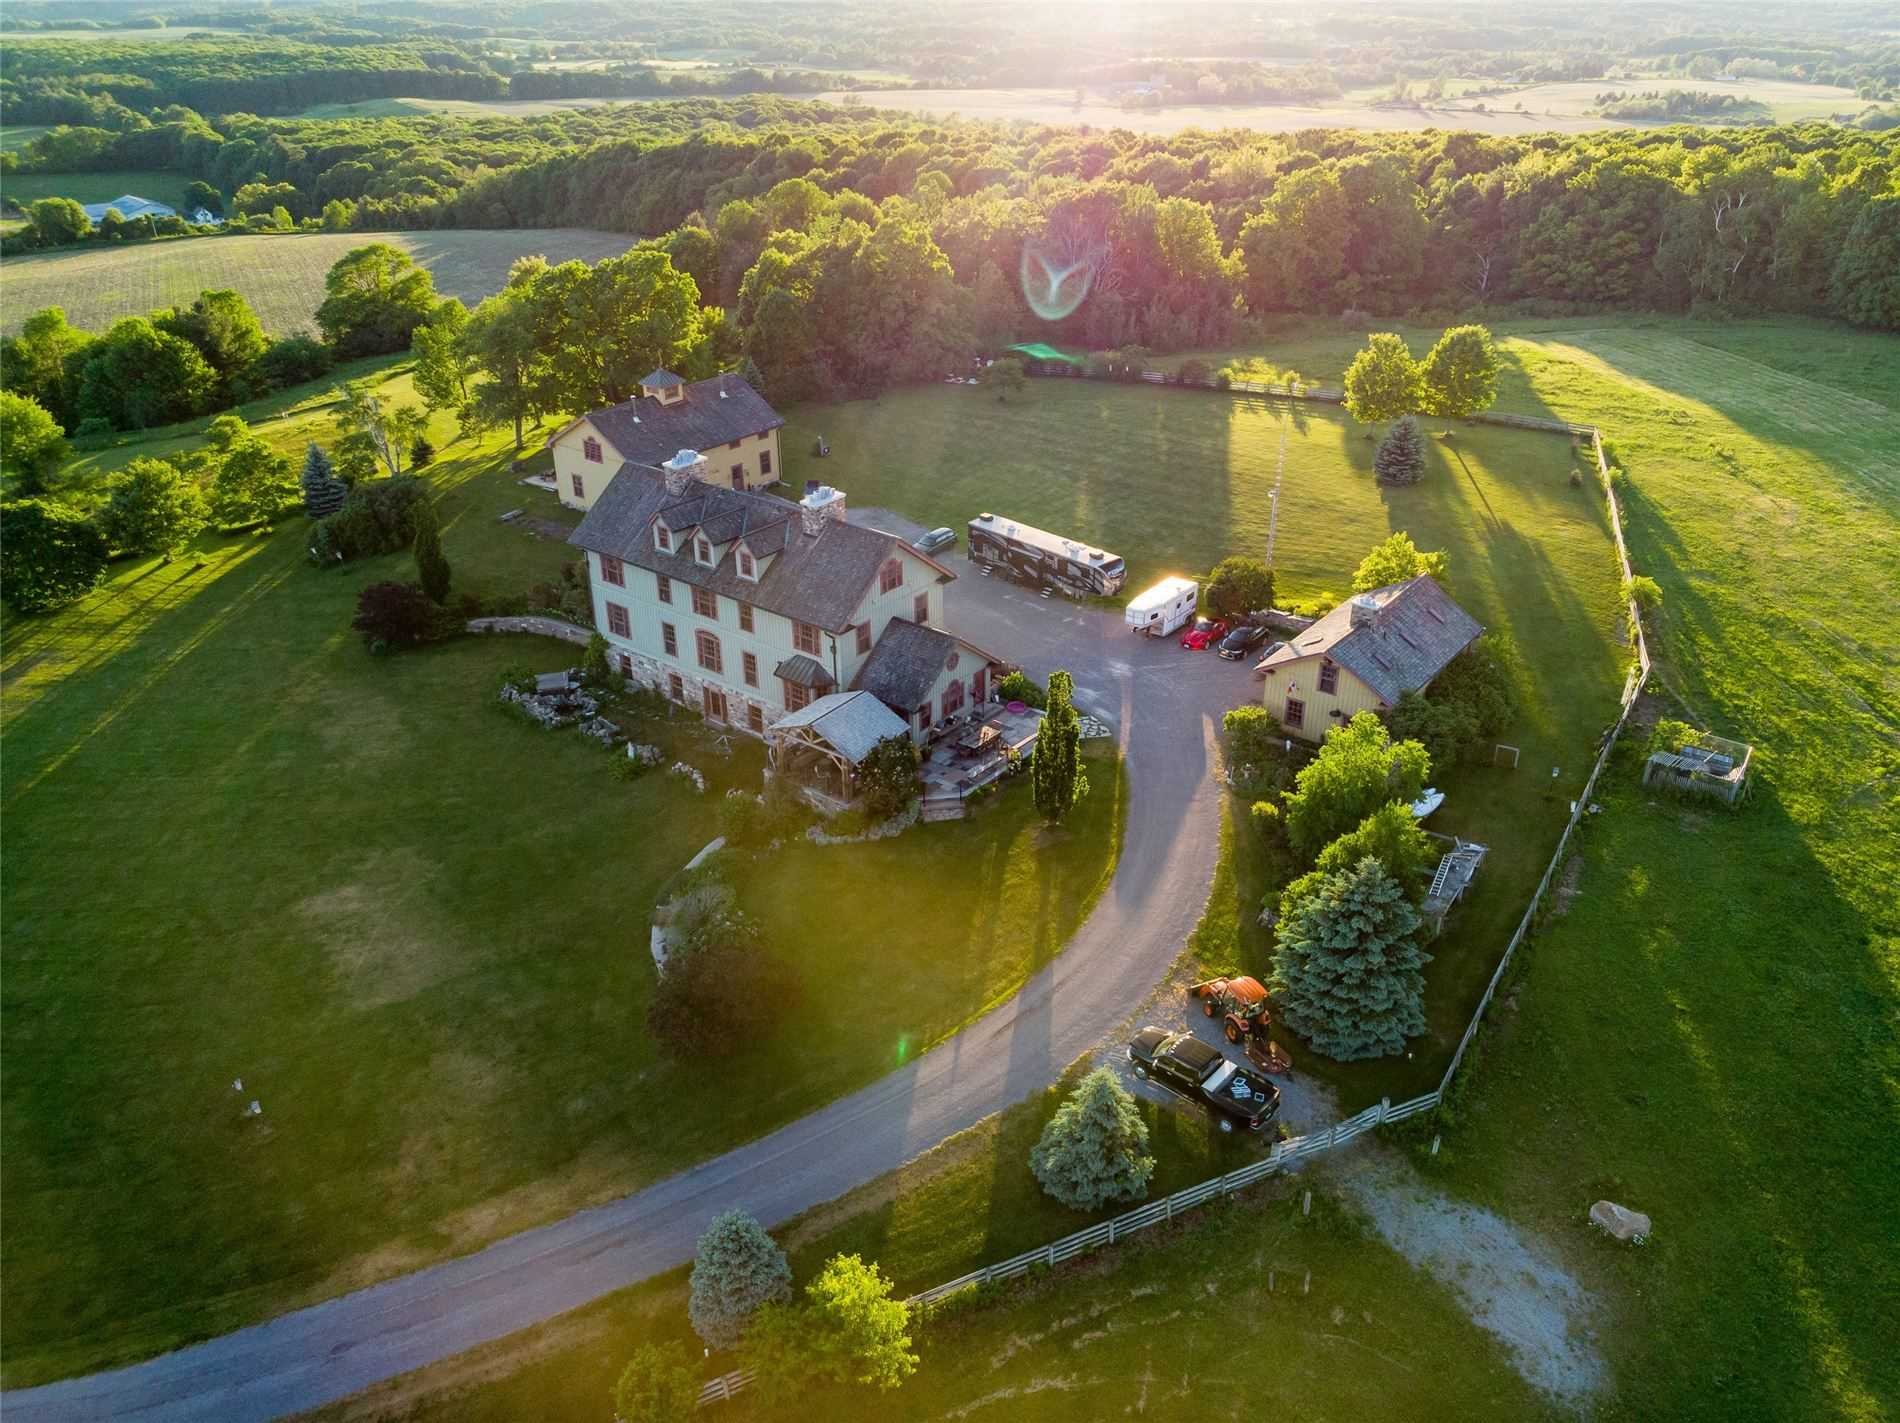 'Longview Estates' Is Truly A One-Of-A-Kind Retreat That Offers Unrivaled Privacy & Breathtaking Views Of Rice Lake, Rolling Hills Backing Onto Ganaraska Forest. Perfectly Sited Atop One Of Northumberland's Highest Hills, This 100 Acre Estate Boasts An 8500Sq Ft. Custom Colonial-Style Home, 3400Sq Ft. 2-Storey Coach House W 1800Sq Ft. Guest Quarters & Cupola, Det. 3-Bay Grg W Fin. Loft Space, 6-Stall Equestrian Barn & Multiple Outbuildings. Custom Everything!